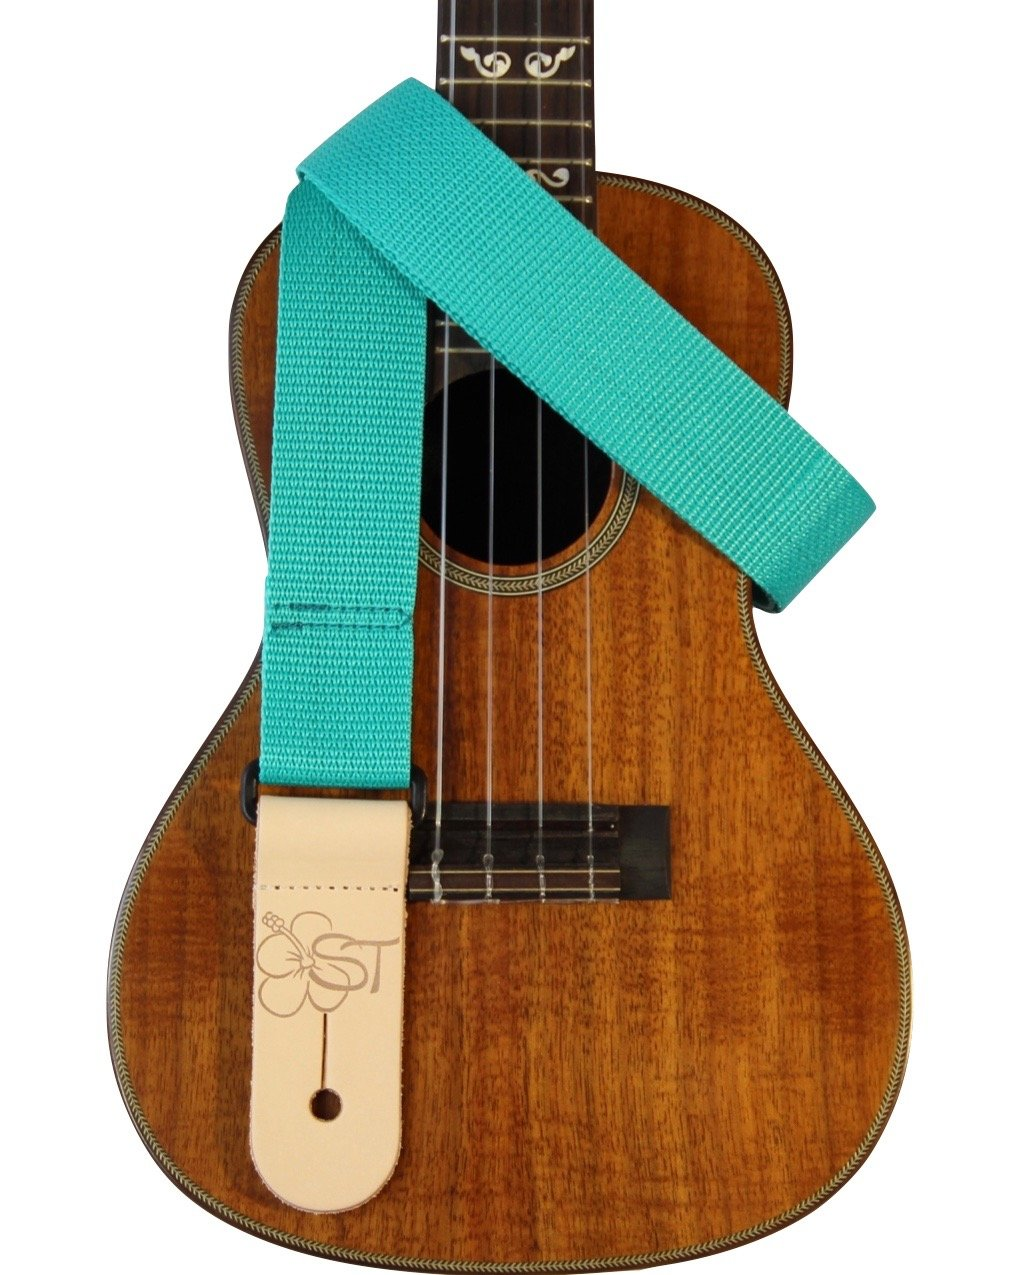 Sherrin's Threads 1.5 Teal Ukulele Strap